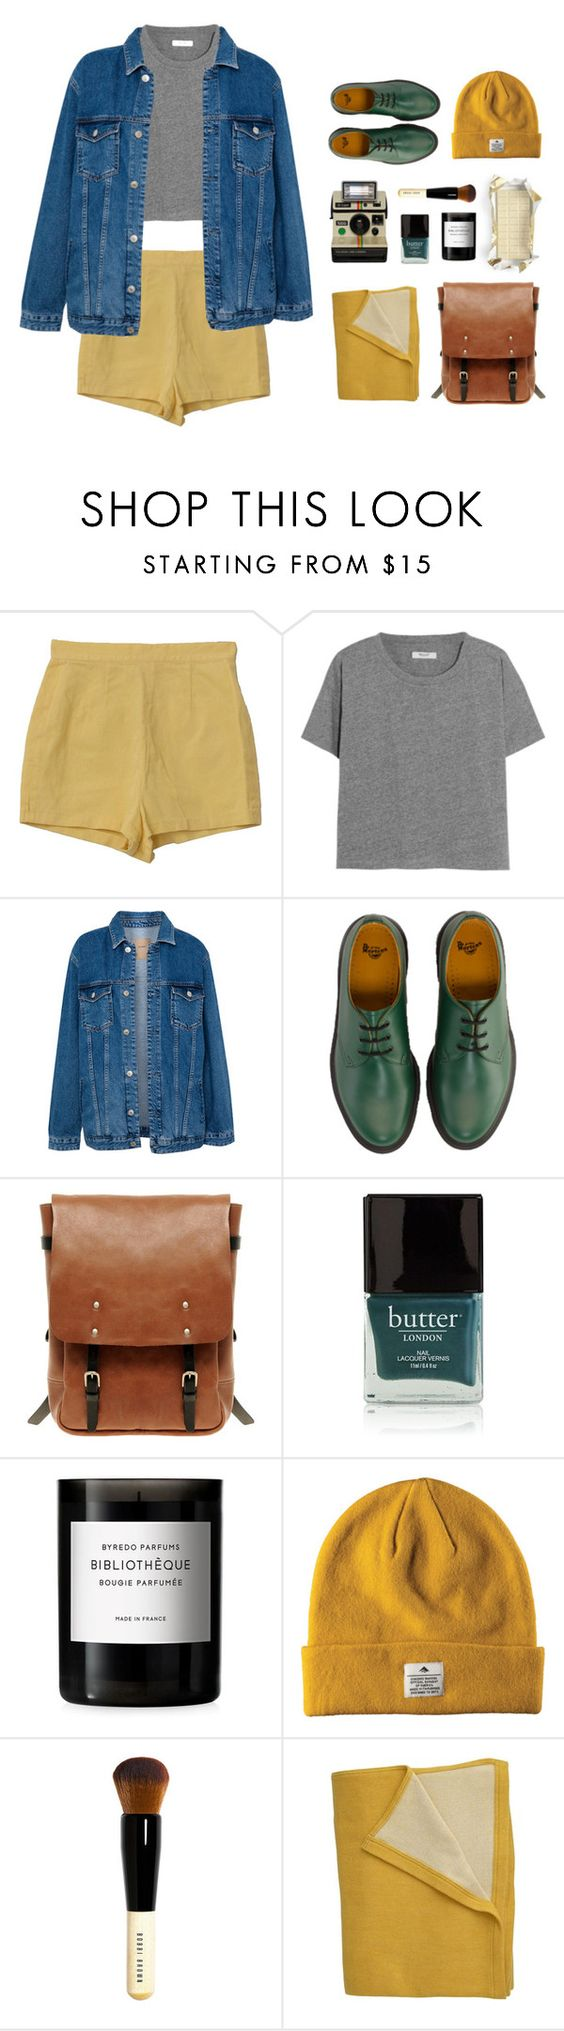 """""""Mustard"""" by its-just-me-boggy ❤ liked on Polyvore featuring Retrò, Madewell, Pull&Bear, Dr. Martens, Ally Capellino, Polaroid, Butter London, Byredo and Bobbi Brown Cosmetics"""